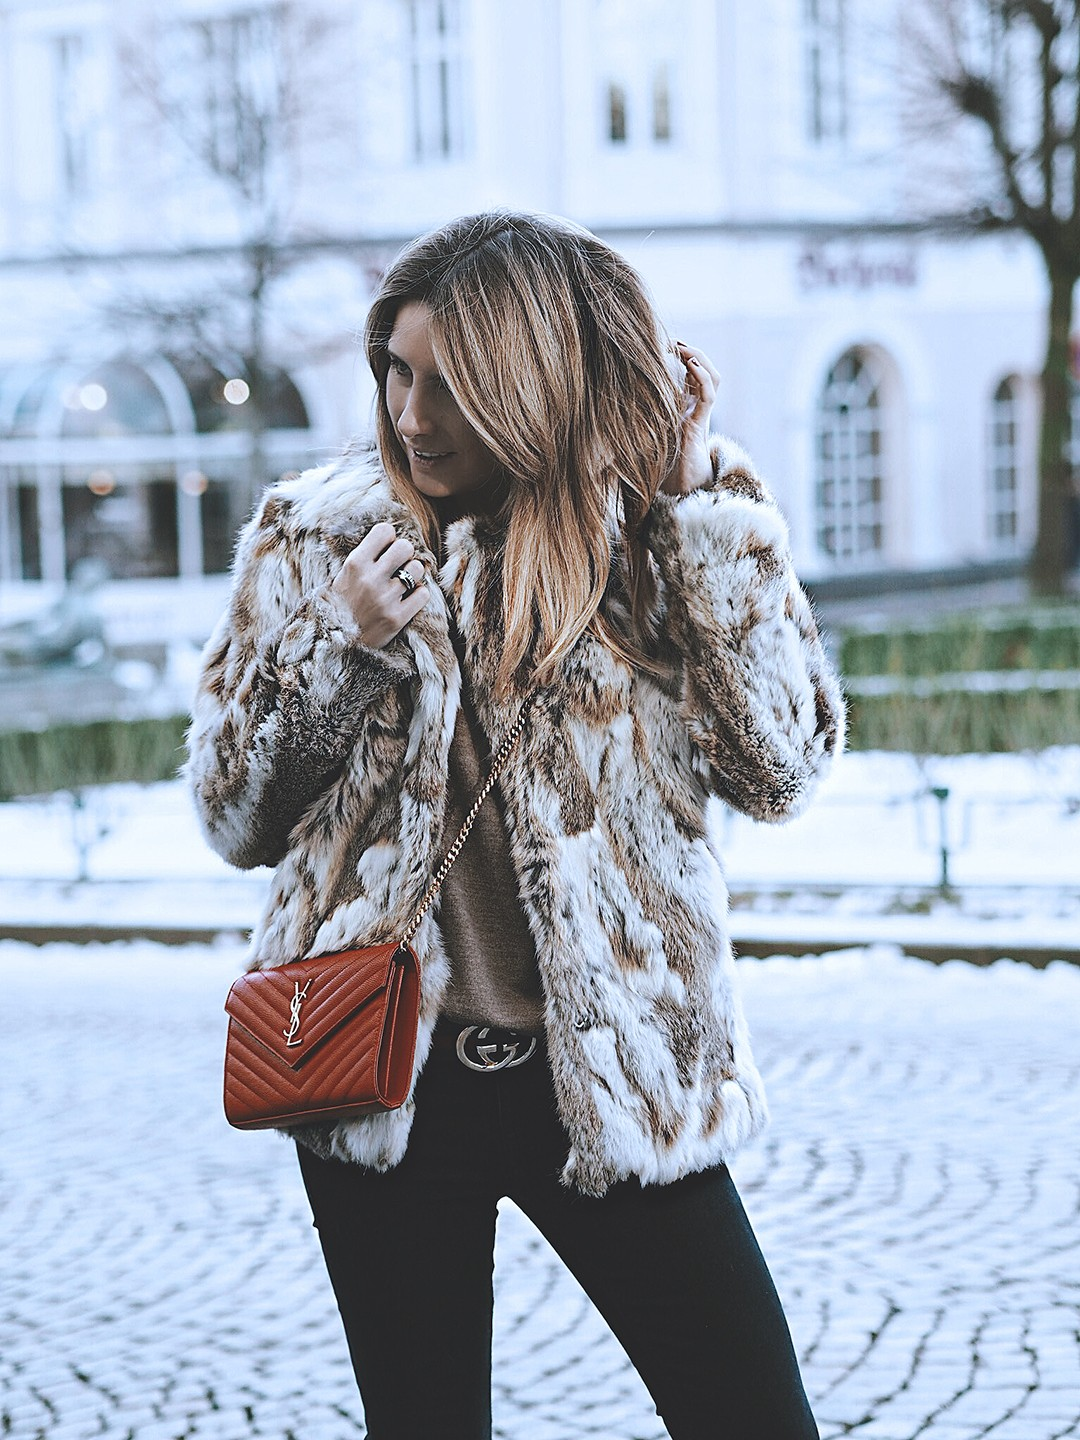 Winter-Wonderland-fashion-blogger-Norway-Monica-SorsIMG_6454